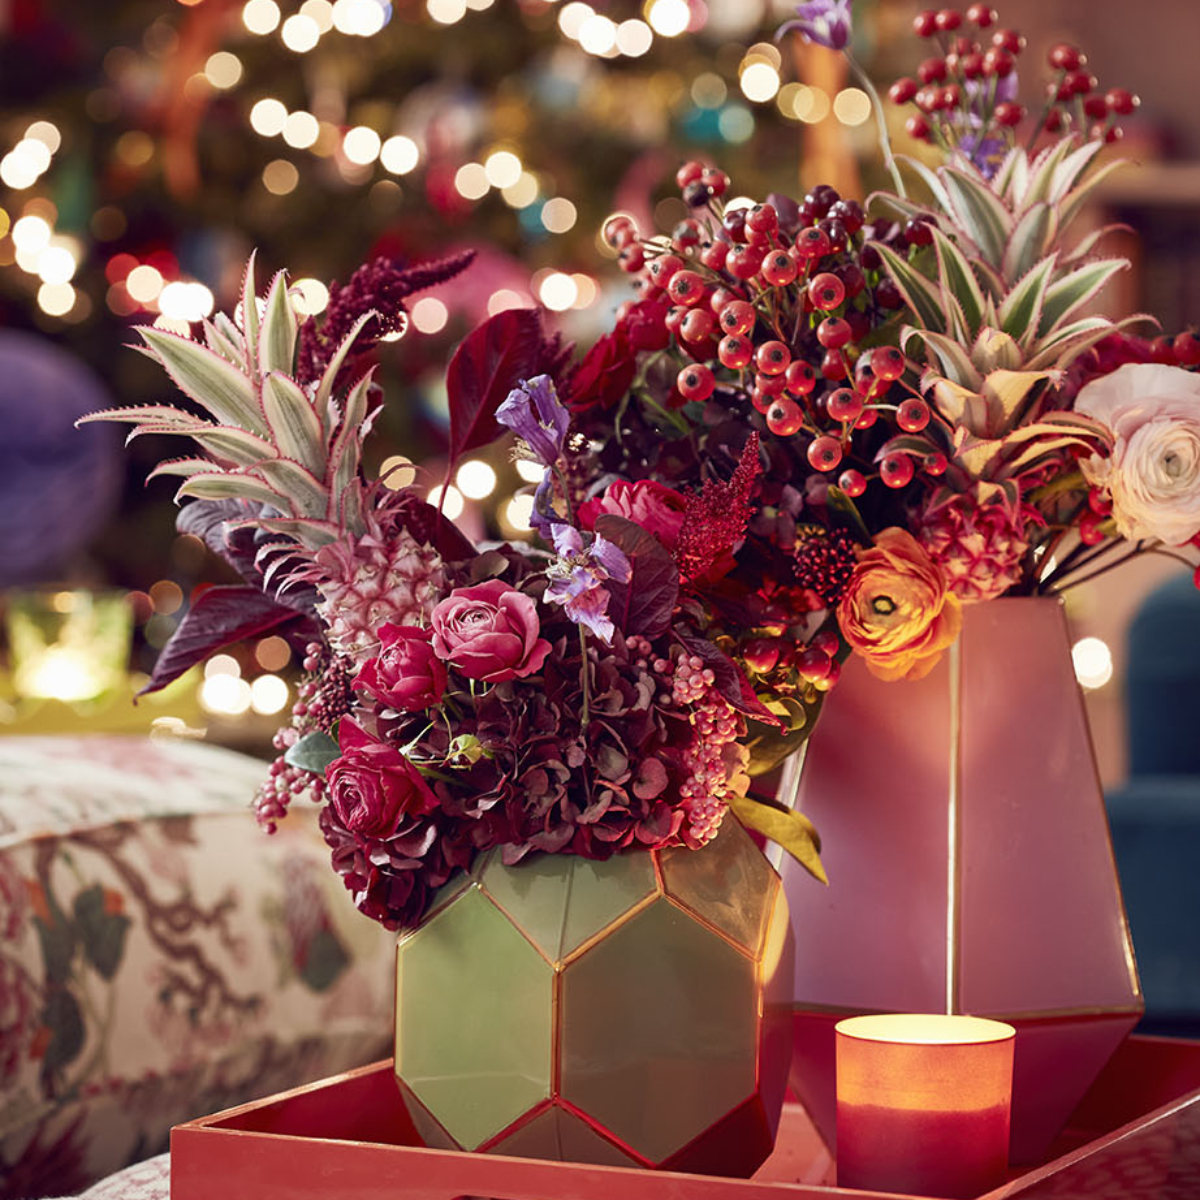 Red tray with green geometric vase and red theme floral display with pineapple tops and berries and Christmas tree in the background. Sophie Robinson's living room